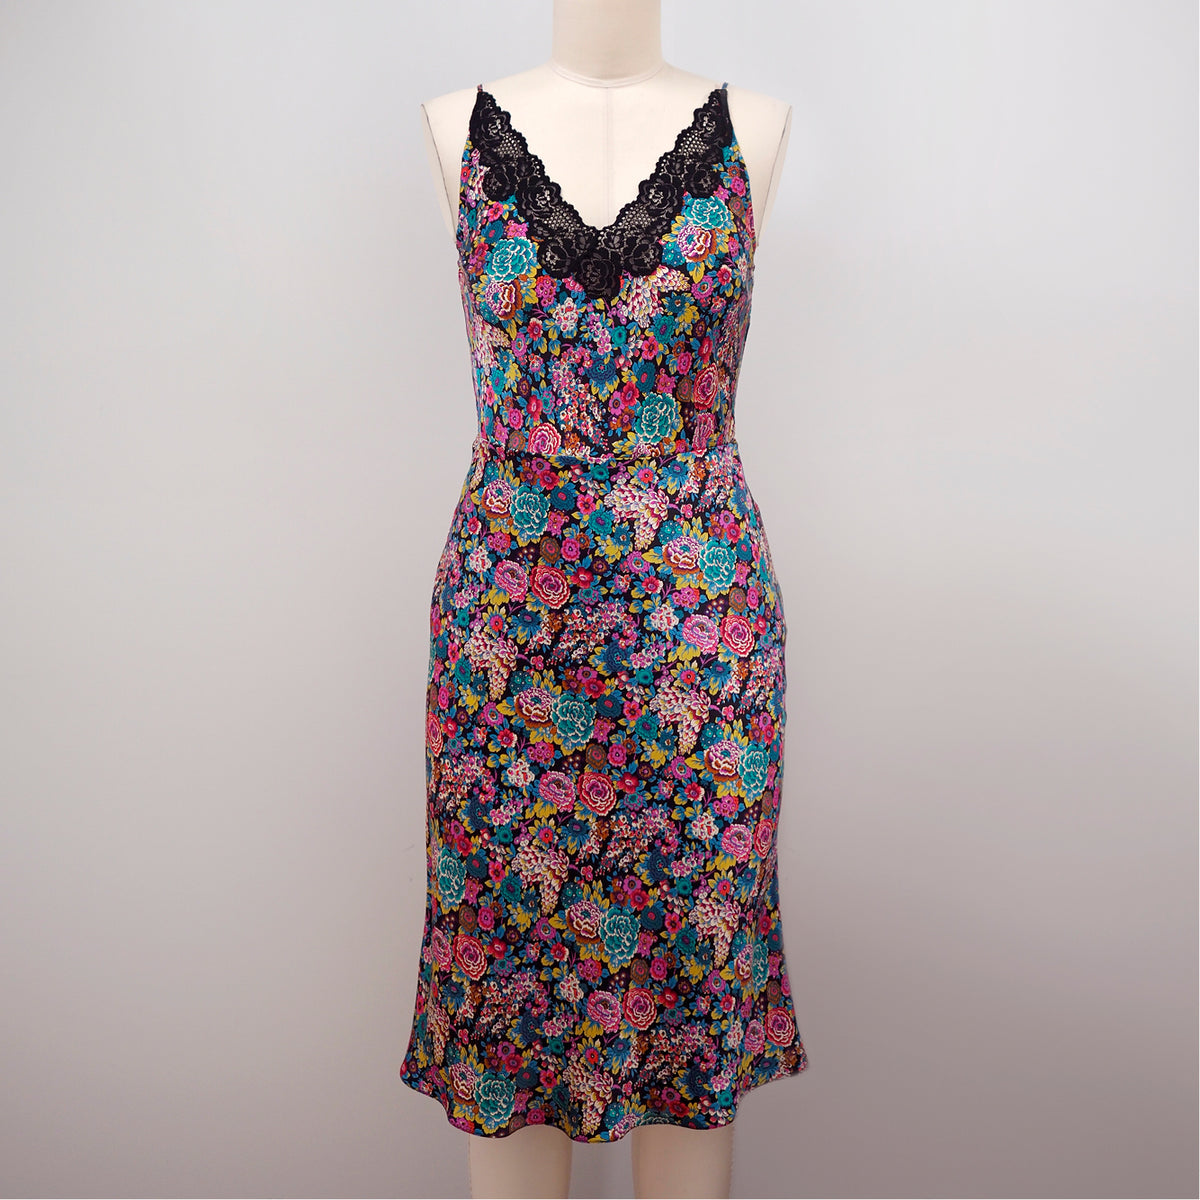 Floral Bellevue Camisole with Newell Slip Skirt by Orange Lingerie